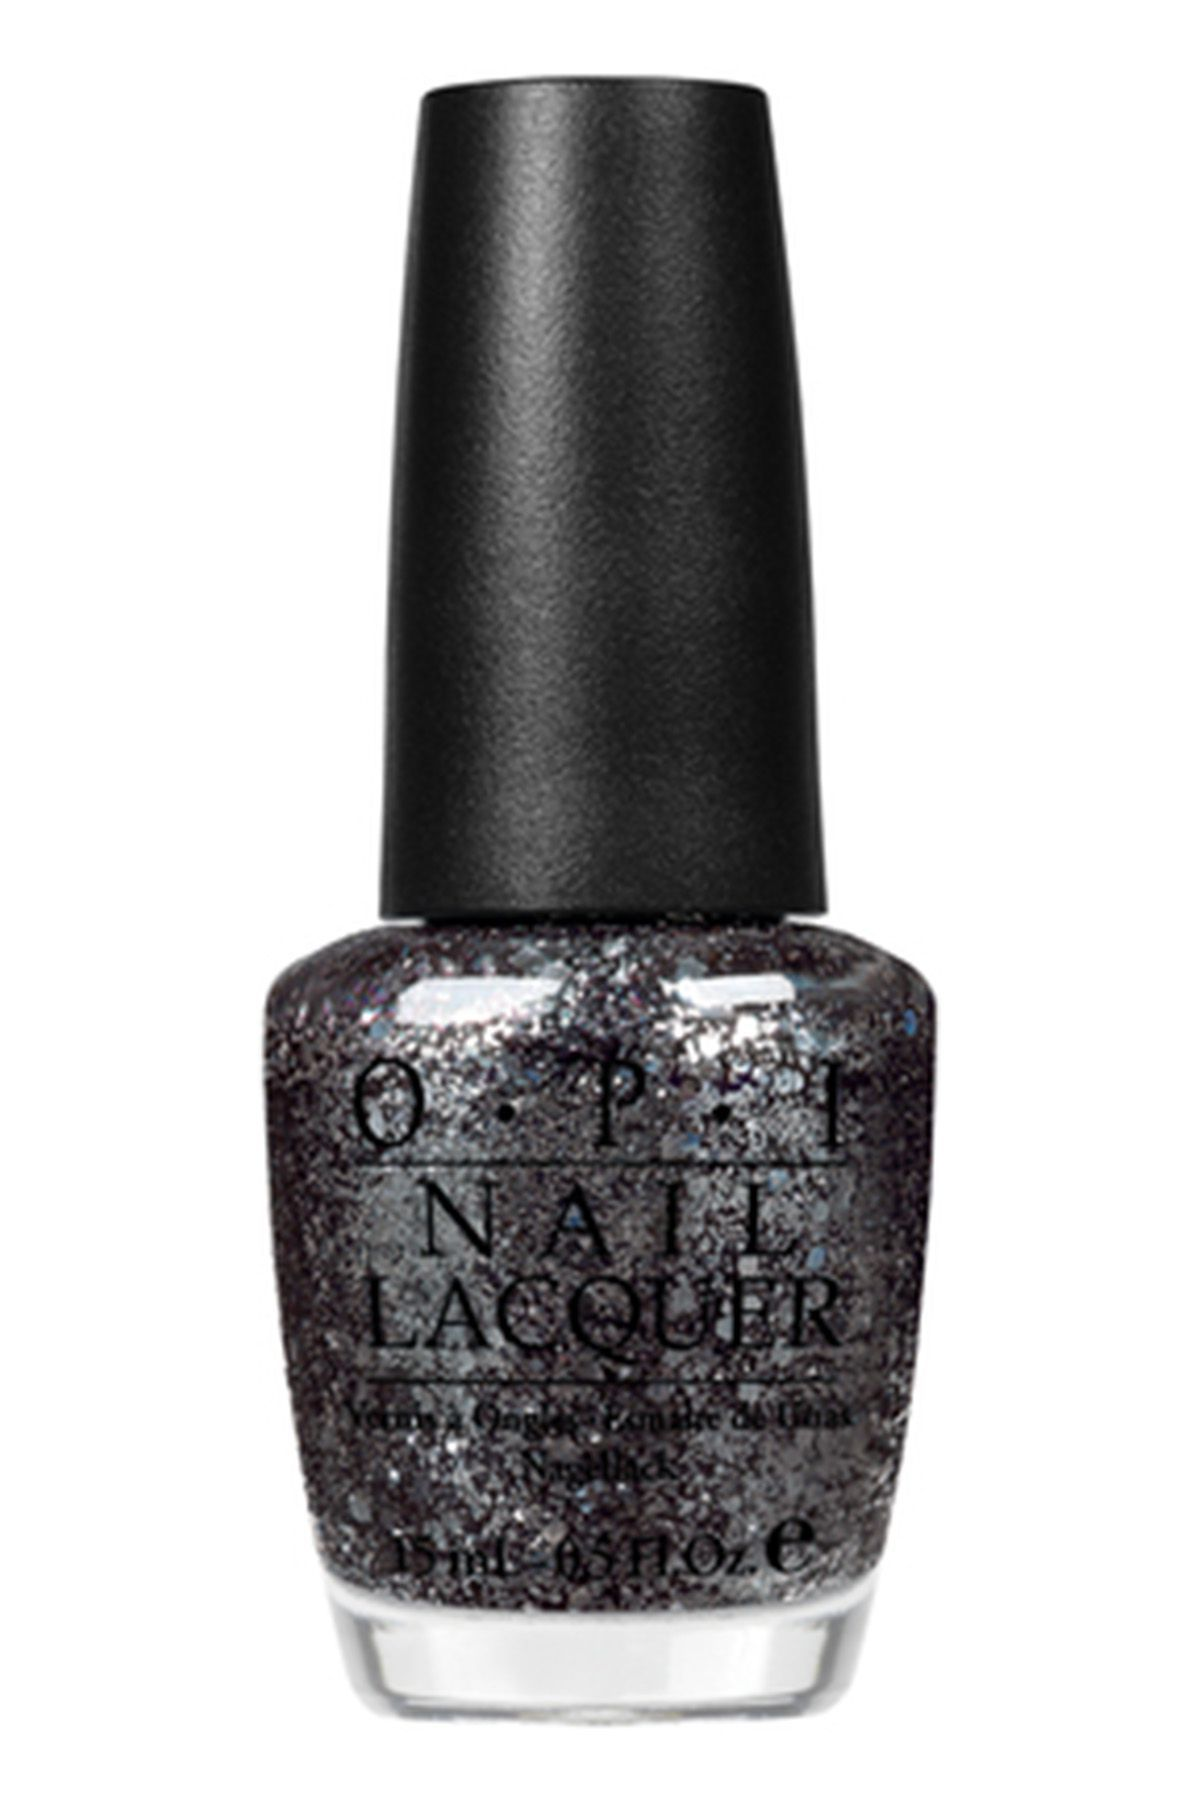 9 Best Black Nail Polishes - Fun Black Nail Colors to Buy in 2018